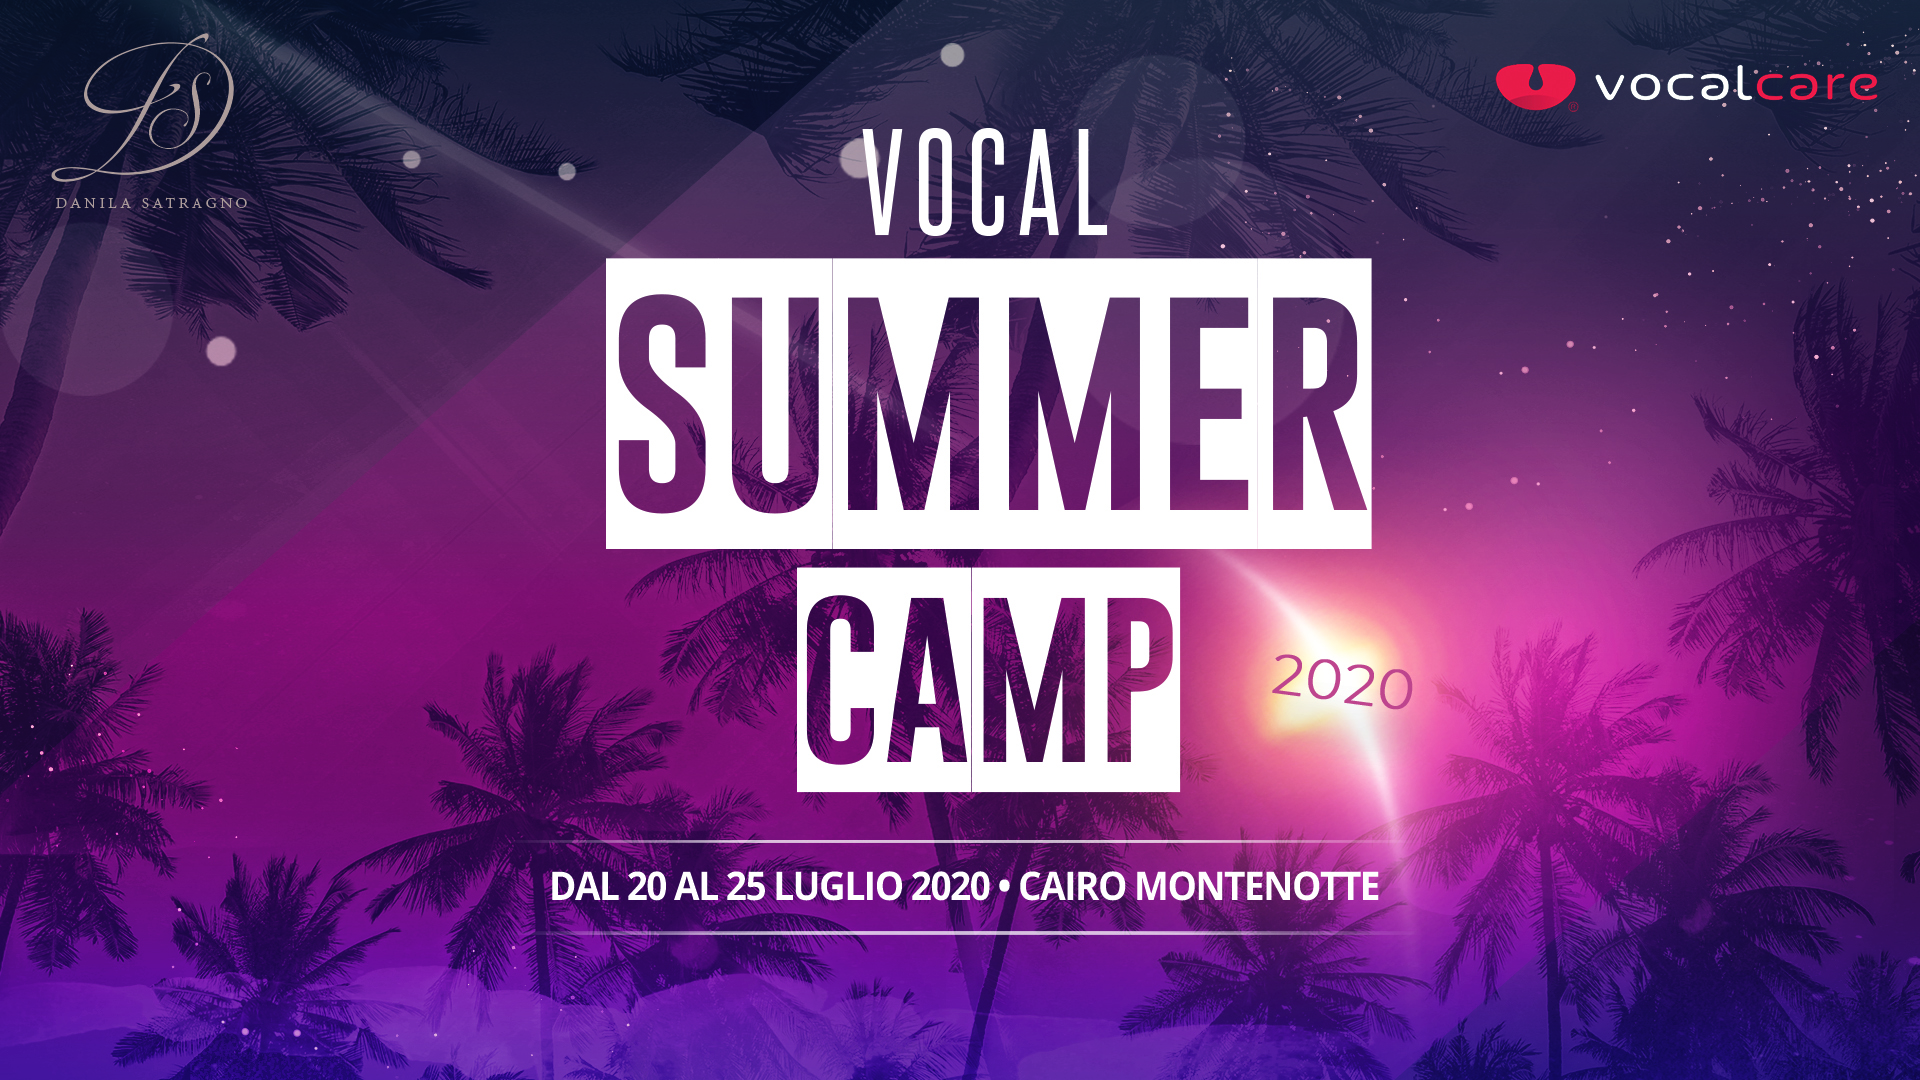 VOCAL CAMP ONLINE - lecție 2h30